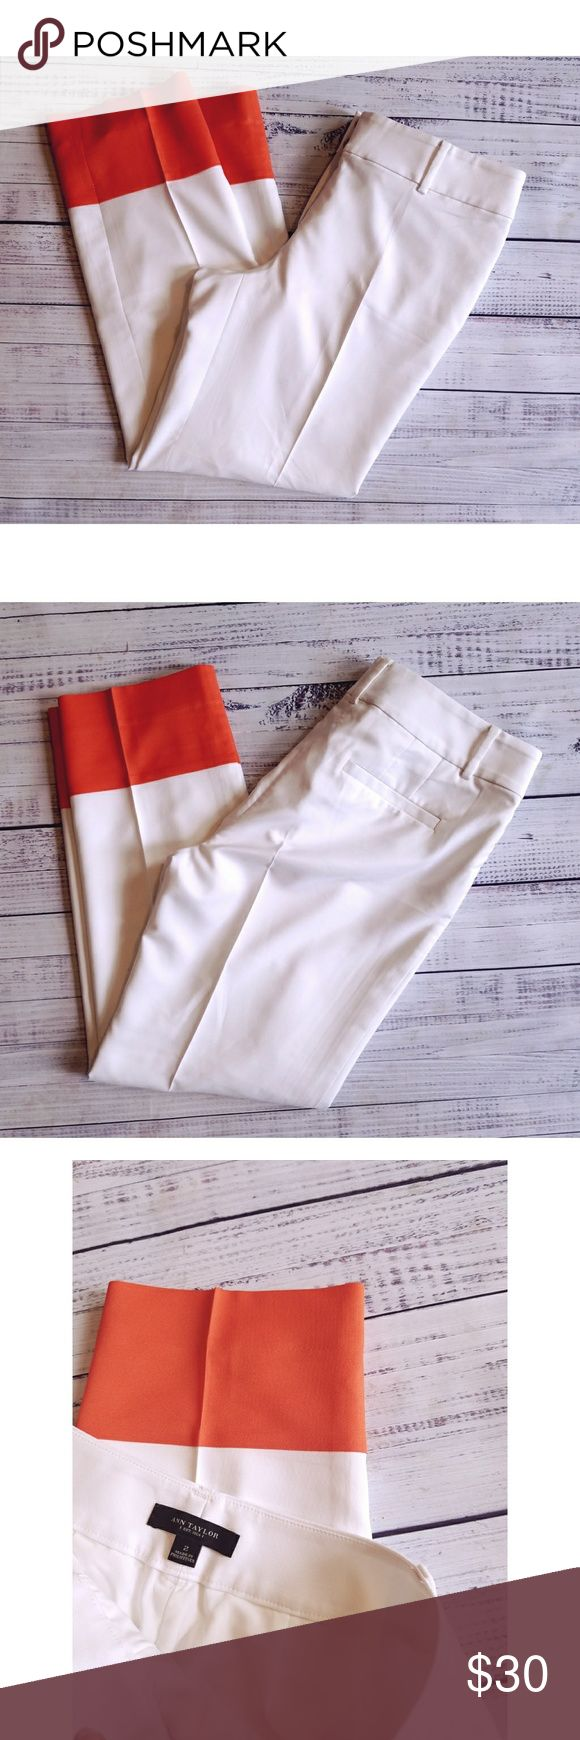 Ann Taylor White and Orange Cropped Pants Lightly worn Light weight  Linned Polyester and spandex 16 inch flat waist  9 inch rise  26.5 inch inseam Ann Taylor Pants Ankle & Cropped